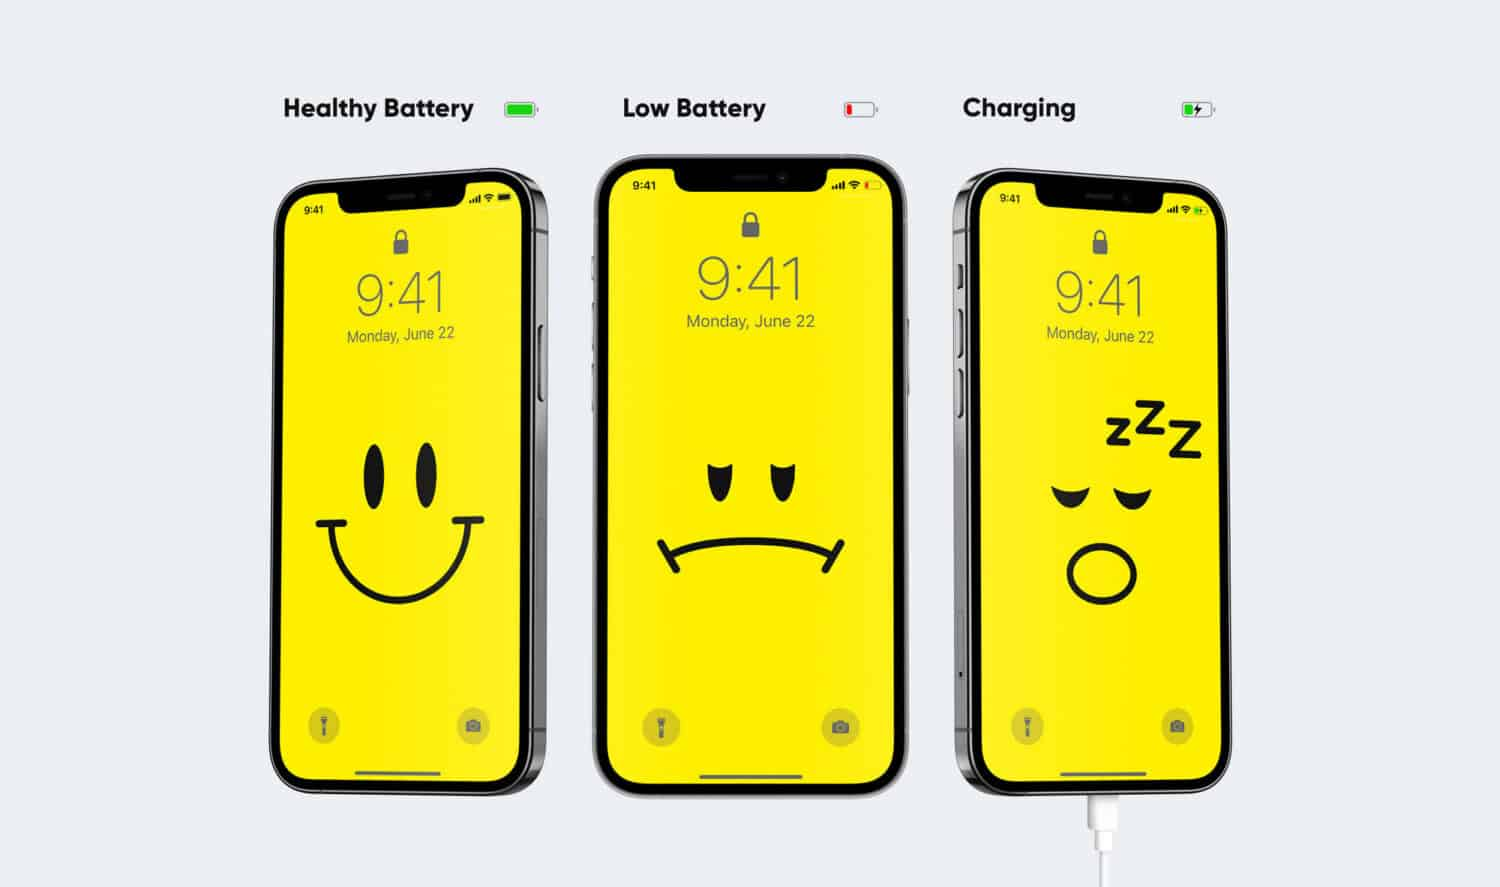 iPhone: wallpapers that change depending on the battery level